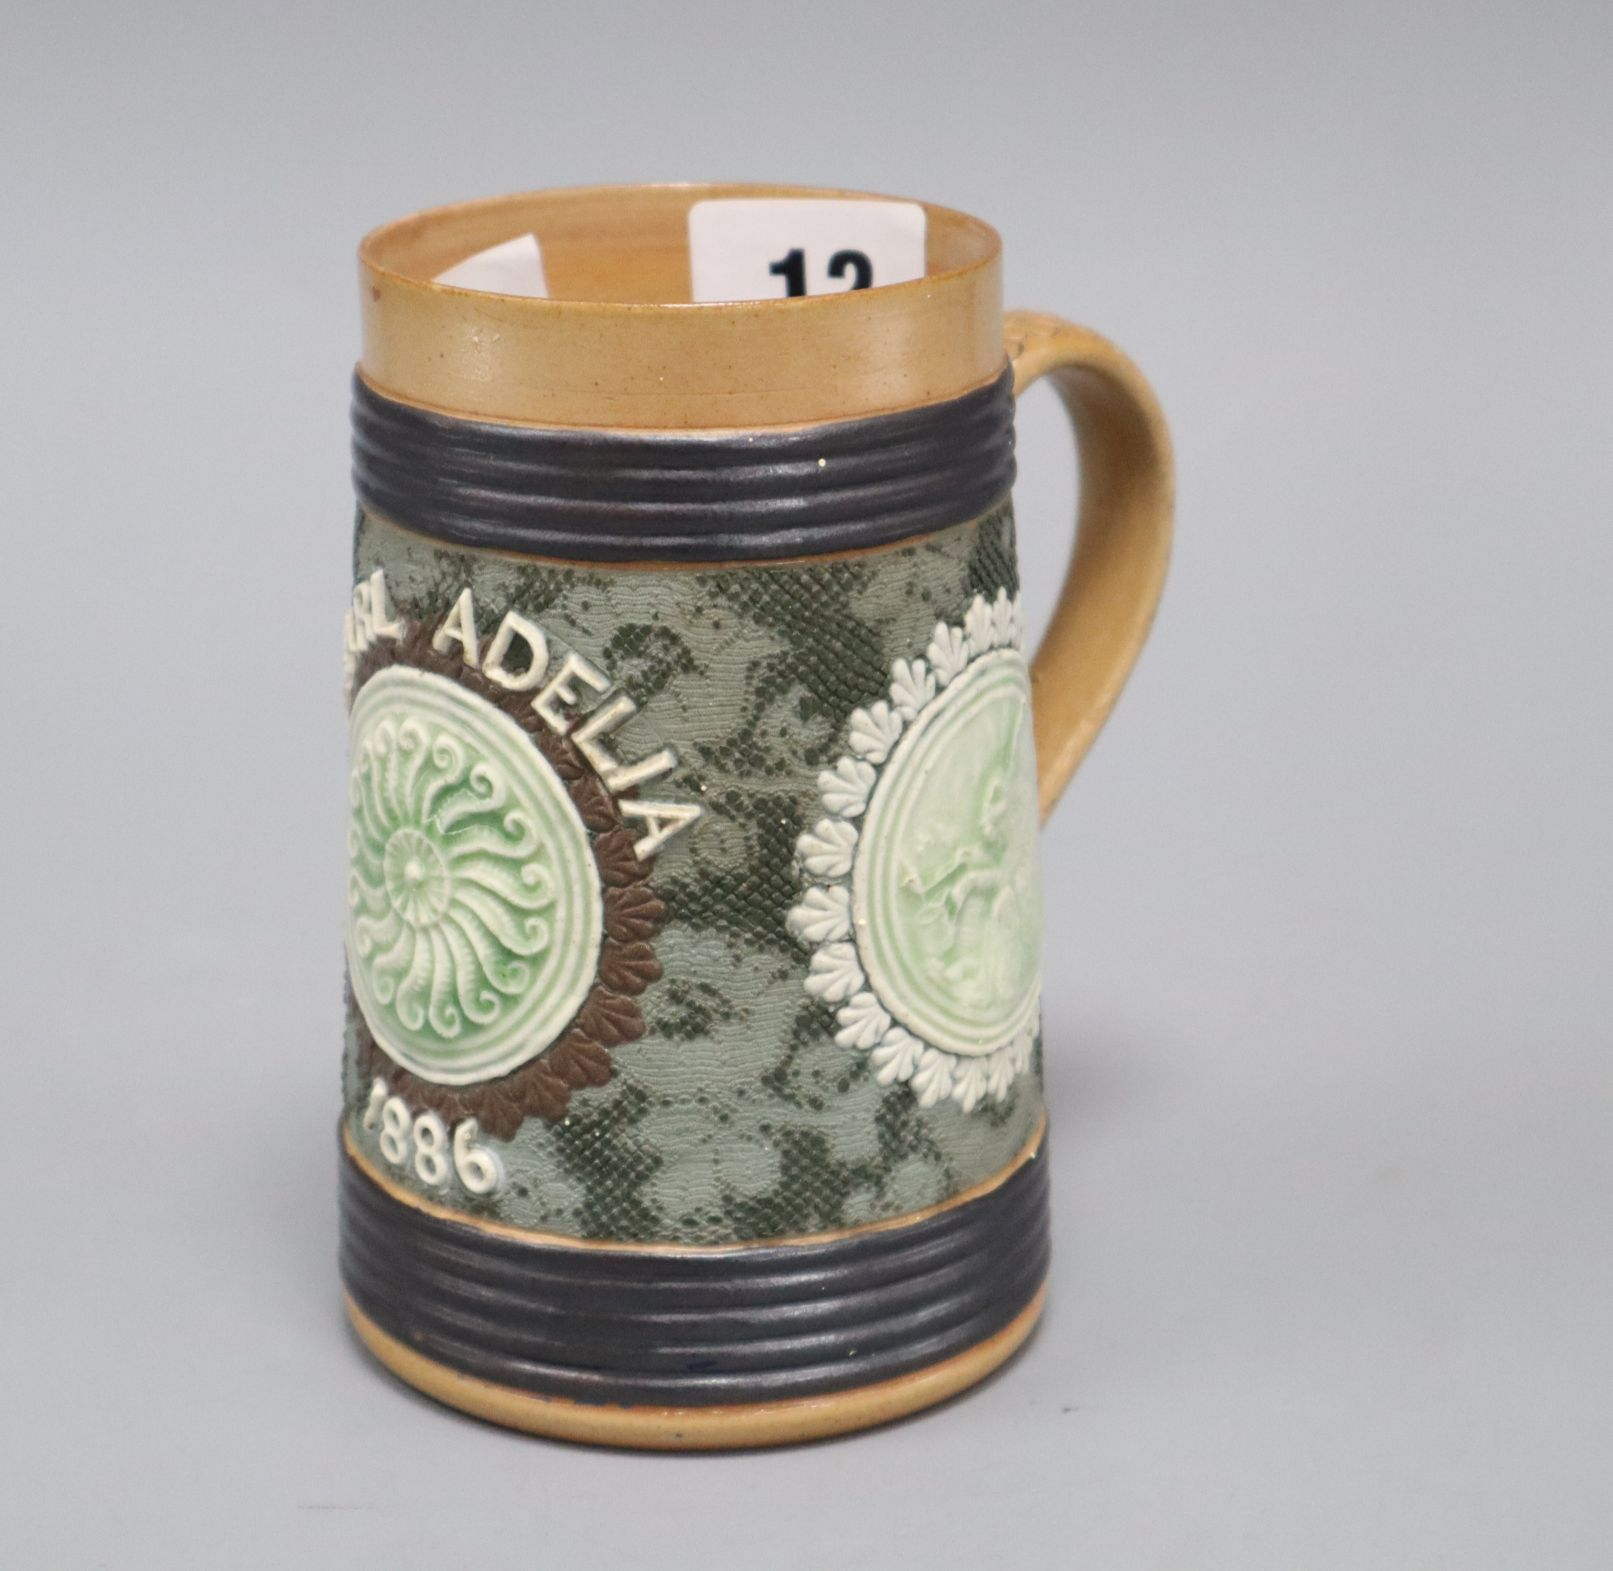 Lot 1012 - An unusual Doulton Lambeth 'tortoise & hare' mug, inscribed 'Pearl Adelia 1886', with green relief